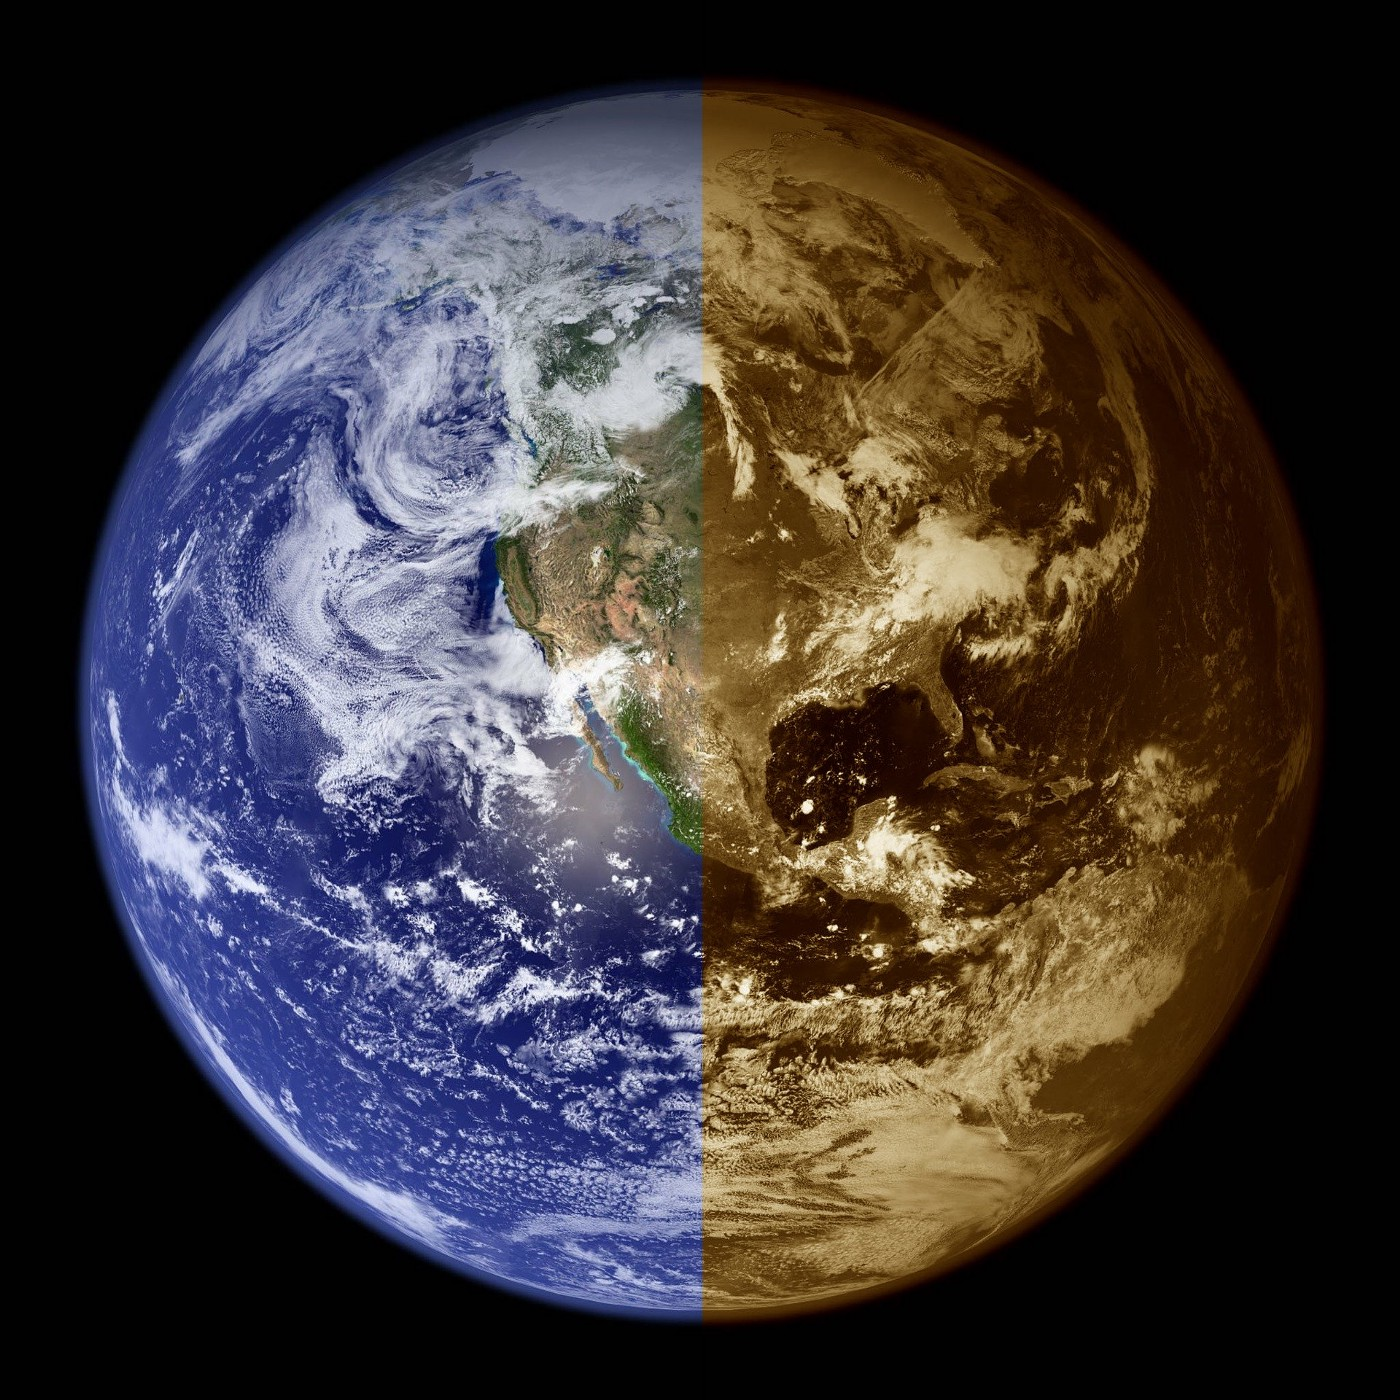 Earth from space, with sepia shading on right half